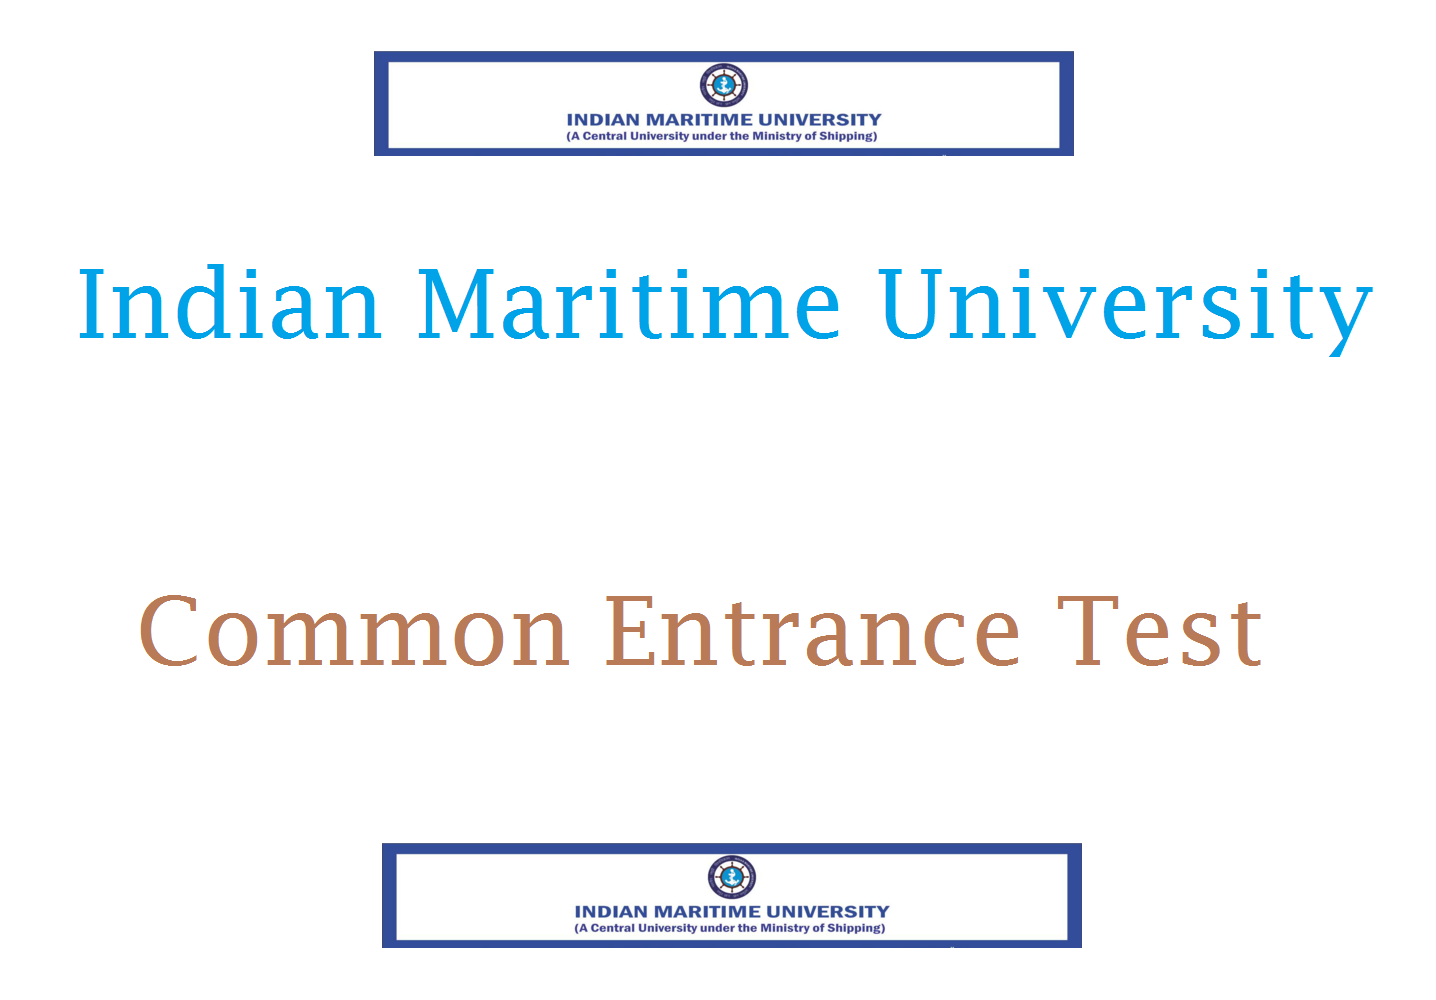 imu cet application form 2020